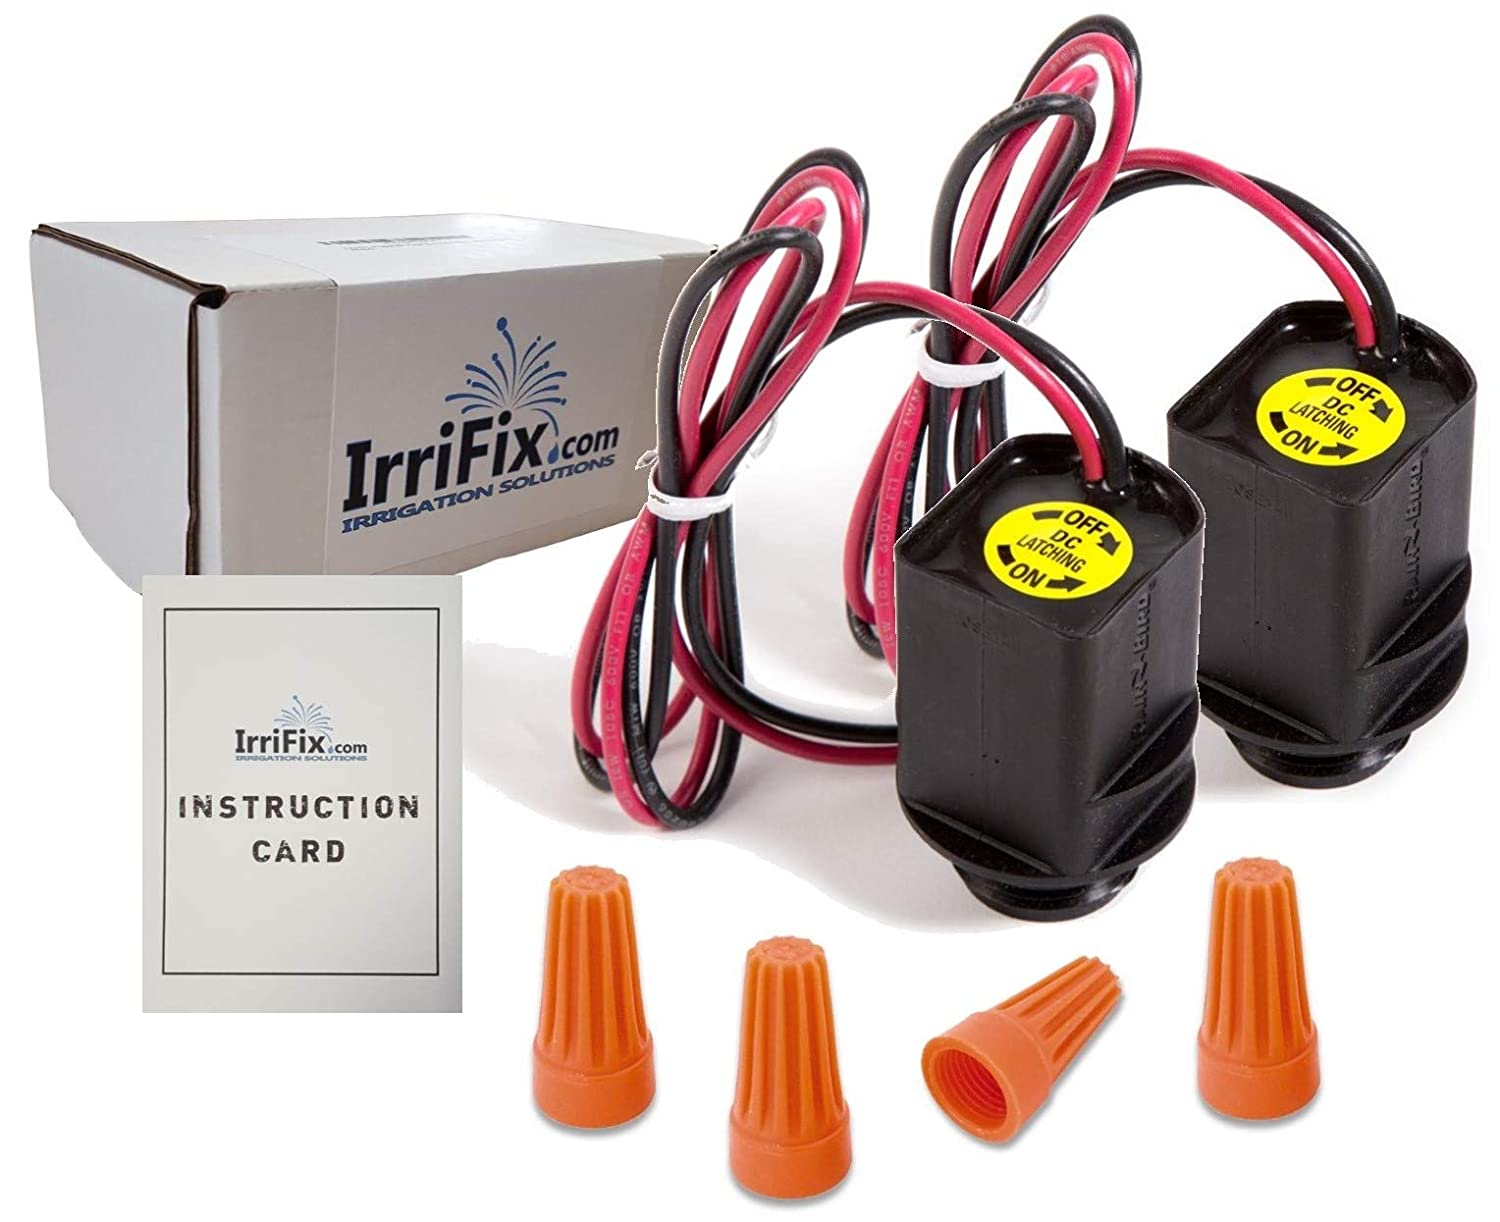 IrriFix Box Set – 2 Pack Rain Bird TBOS Solenoids – RainBird Model TBOSPSOL Potted Latching DC Power Solenoids – Complete with Wire Connectors and Instruction Card